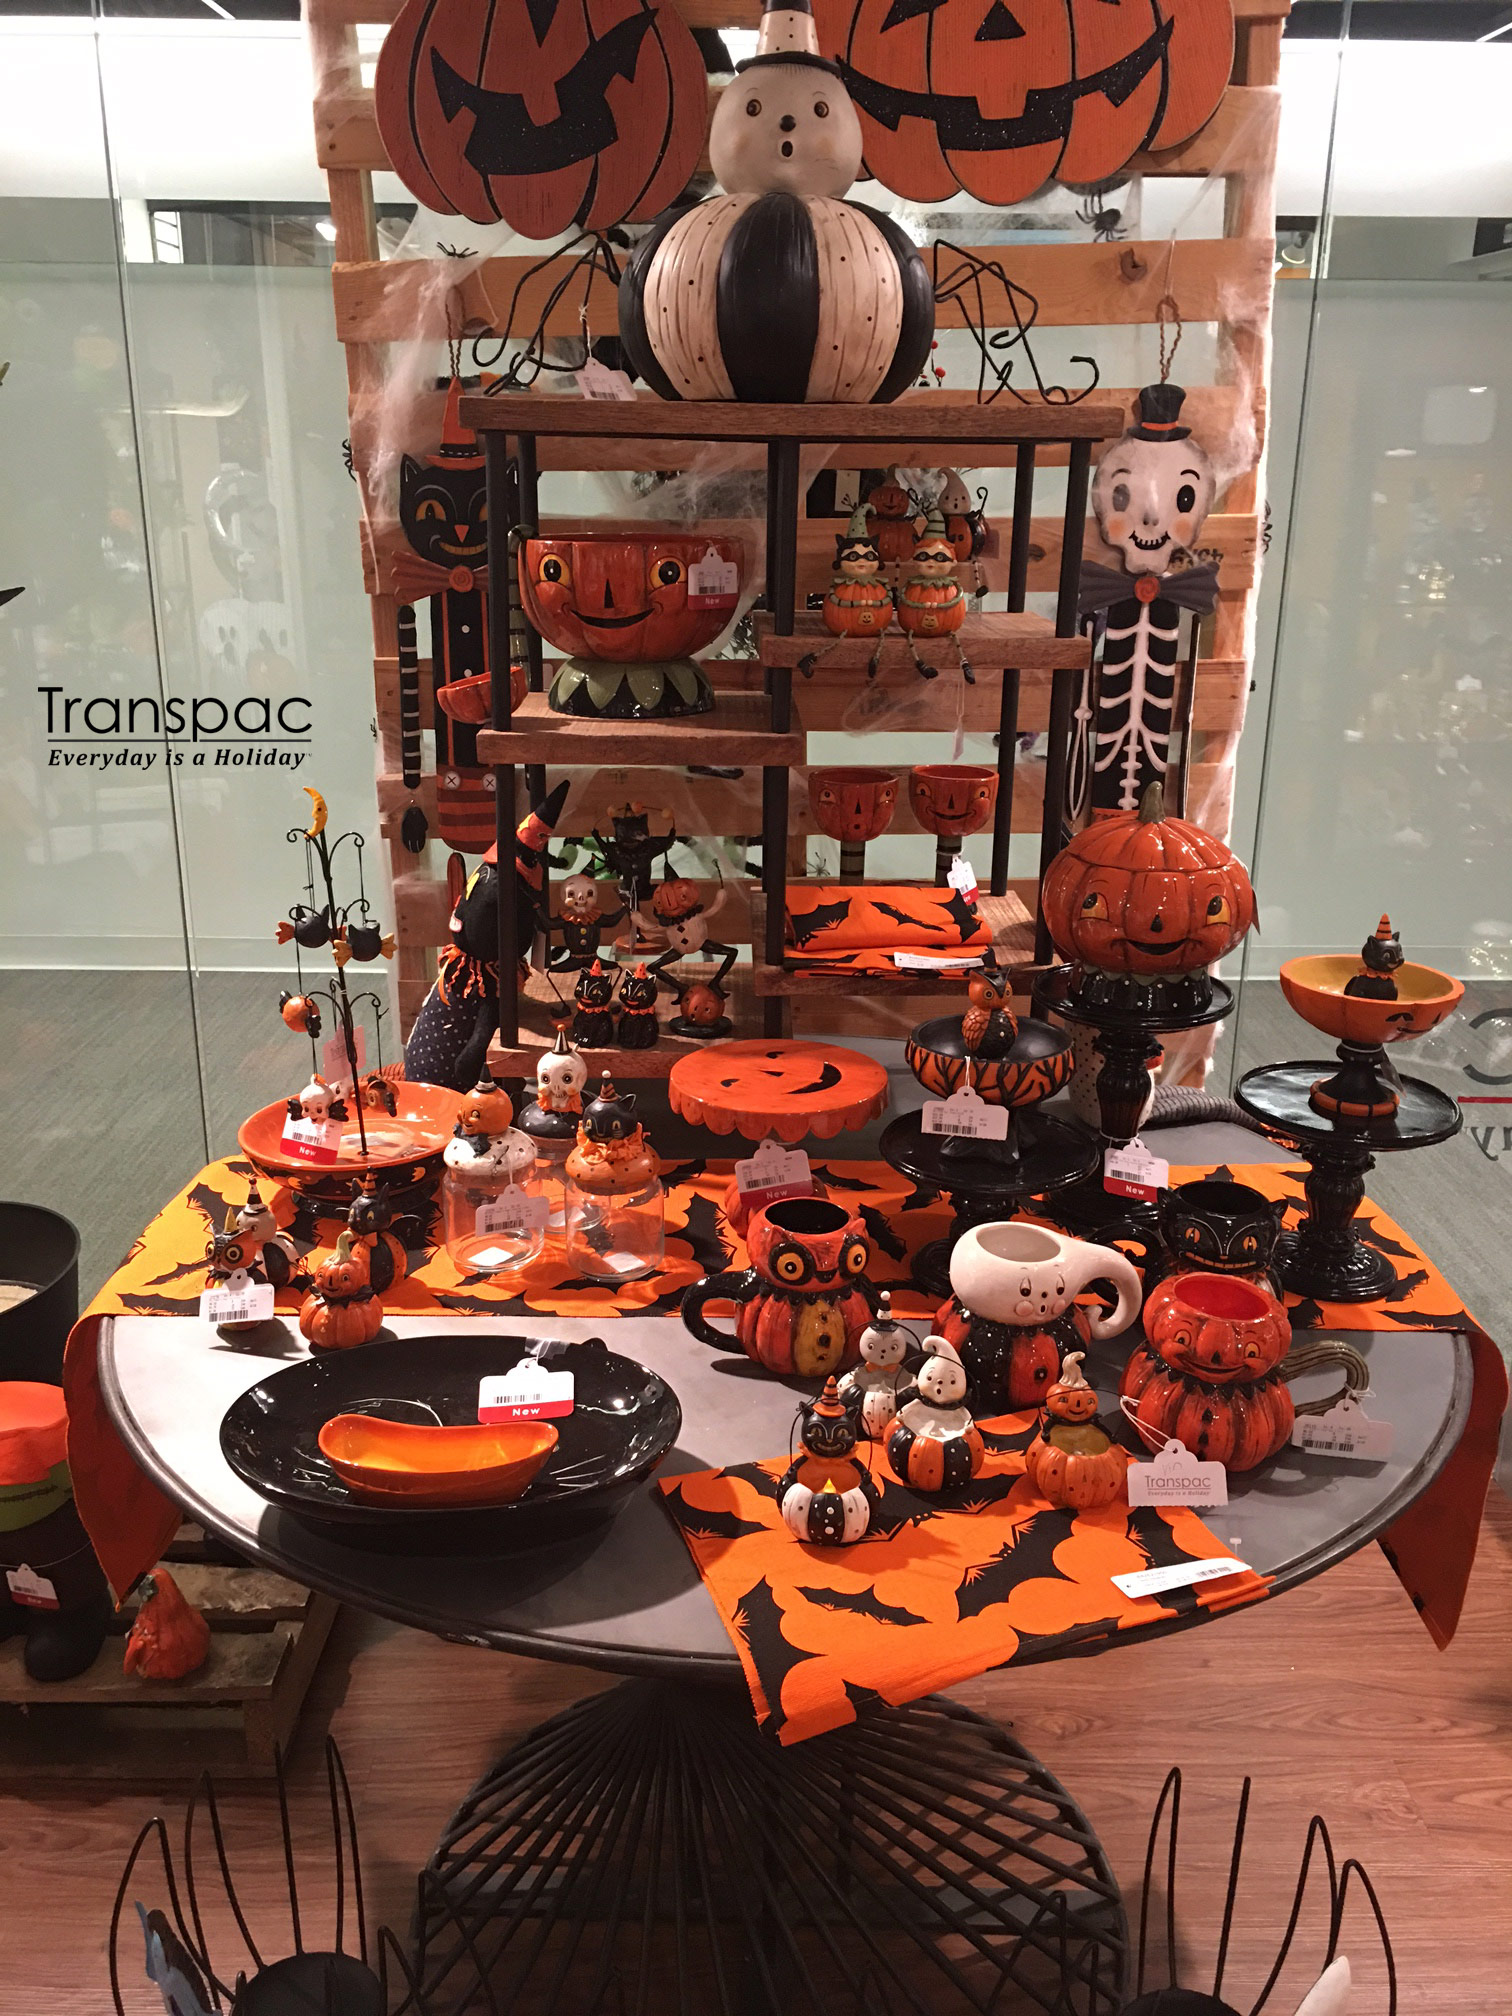 Quick snap from my January 2018 Halloween display in Transpac Import's Atlanta Showroom. I am not involved in this phase of the design process, so I cross my fingers that the displays will be eye-catching. The majority of the items grouped together here are my designs, minus the textiles and the large jack-o'-lanterns hovering over the scene. My Black Cat Mug is in the mix, albeit a bit tricky to see from this angle.